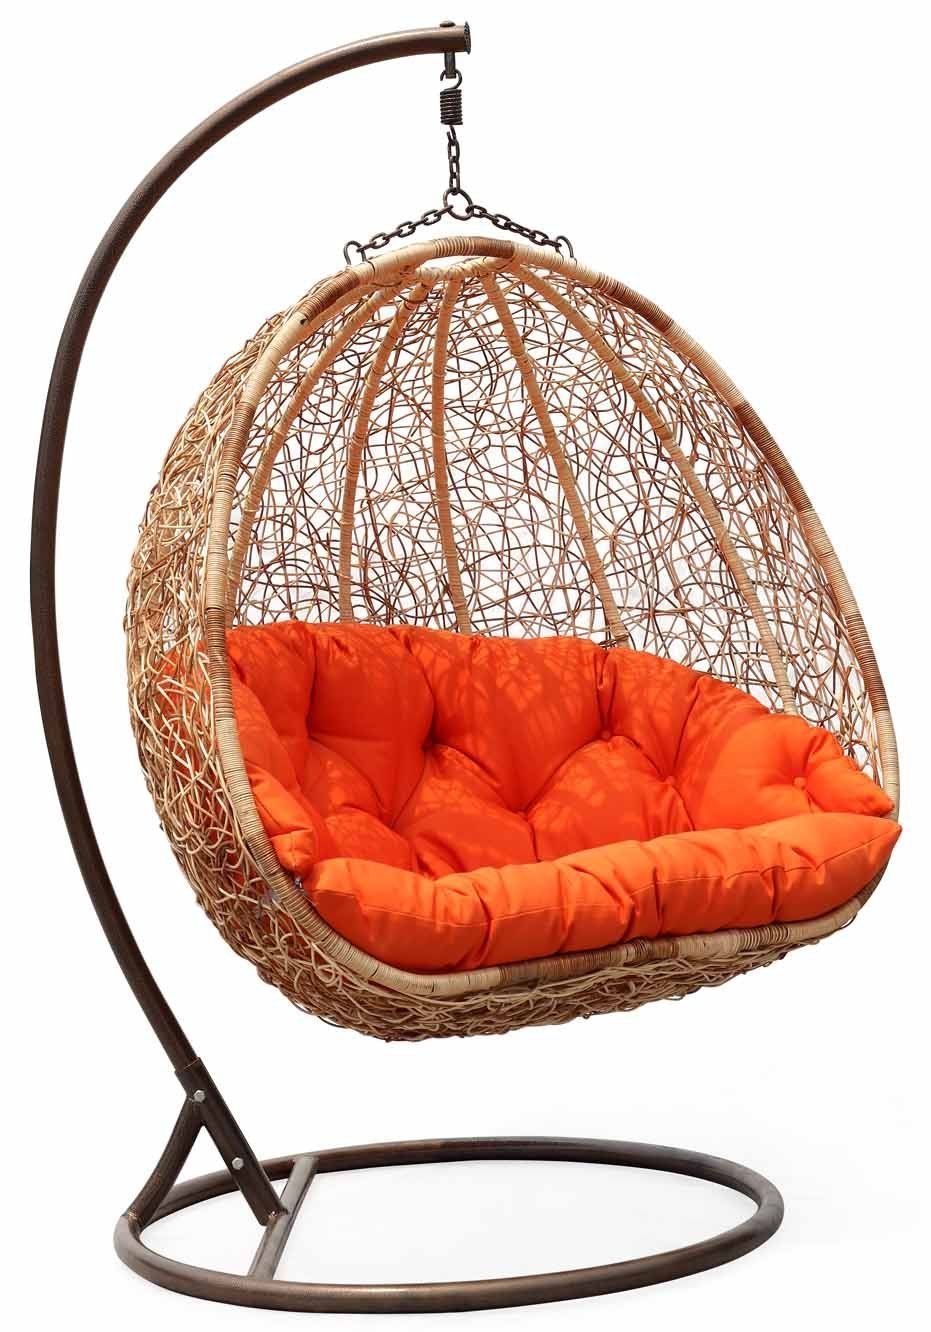 wicker swing chair with orange cushion pretty things for. Black Bedroom Furniture Sets. Home Design Ideas